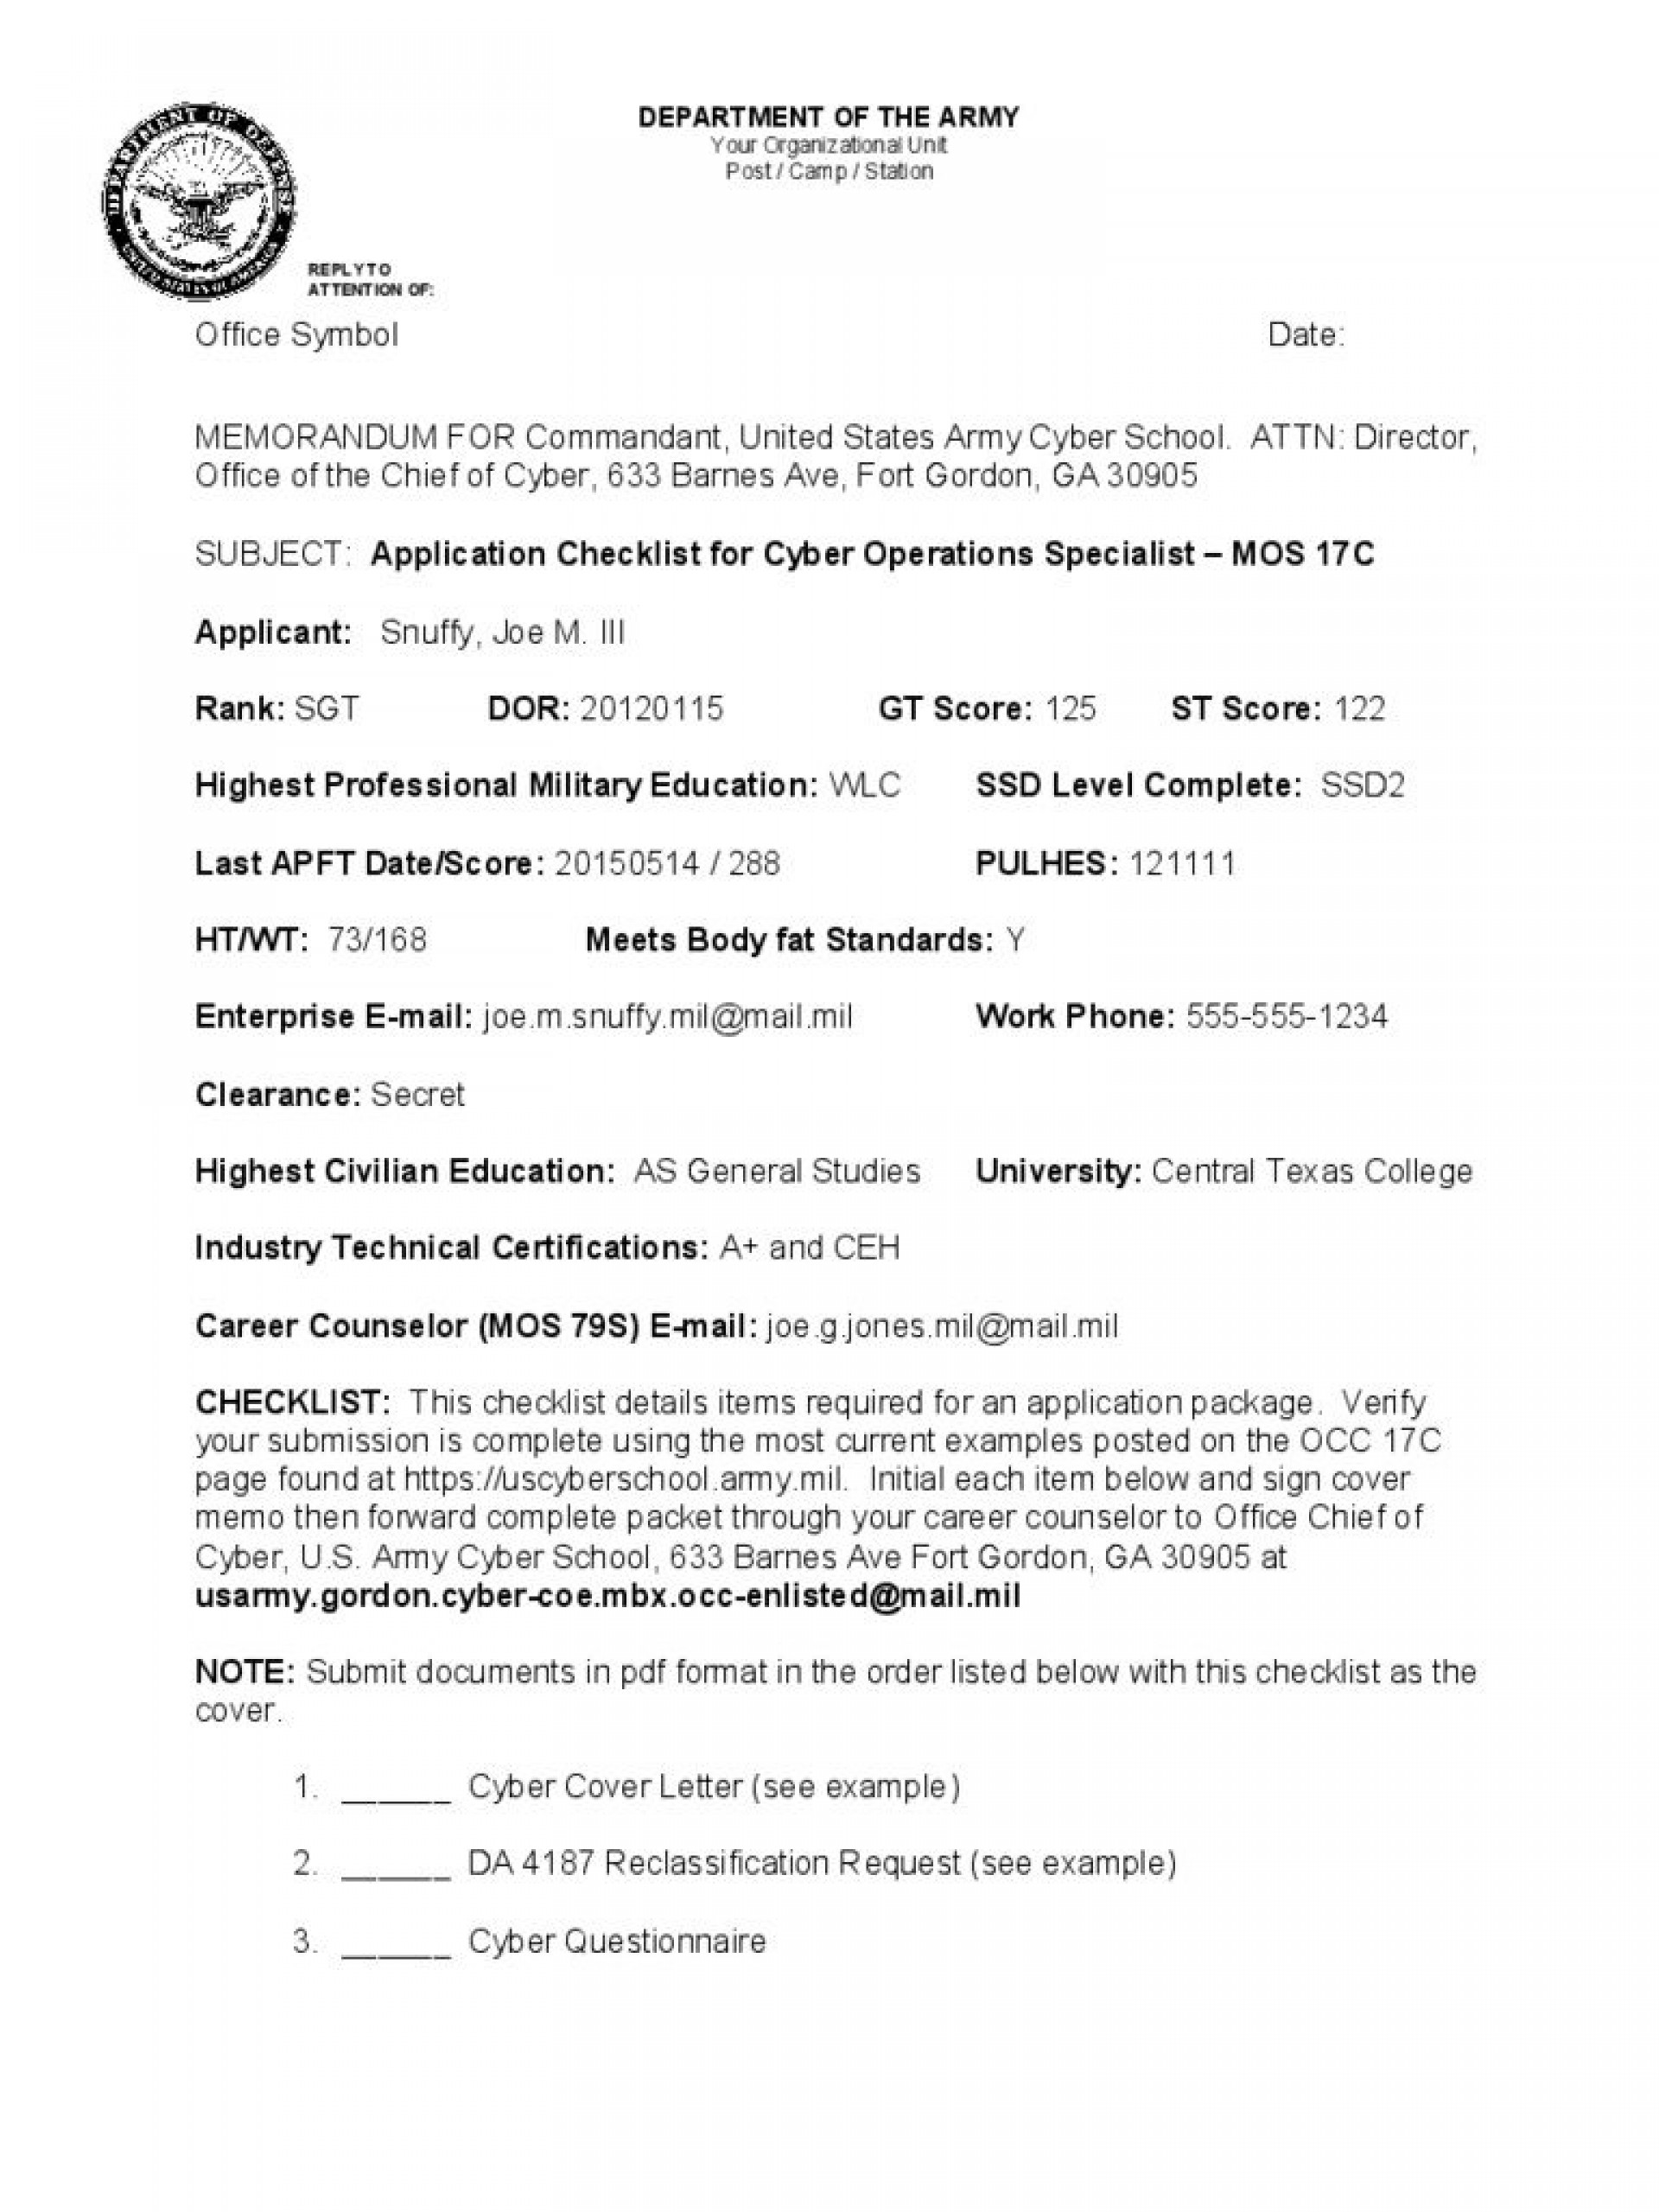 009 Frightening Memorandum For Record Template Sample  Army Pdf Fillable Example Wlc1920